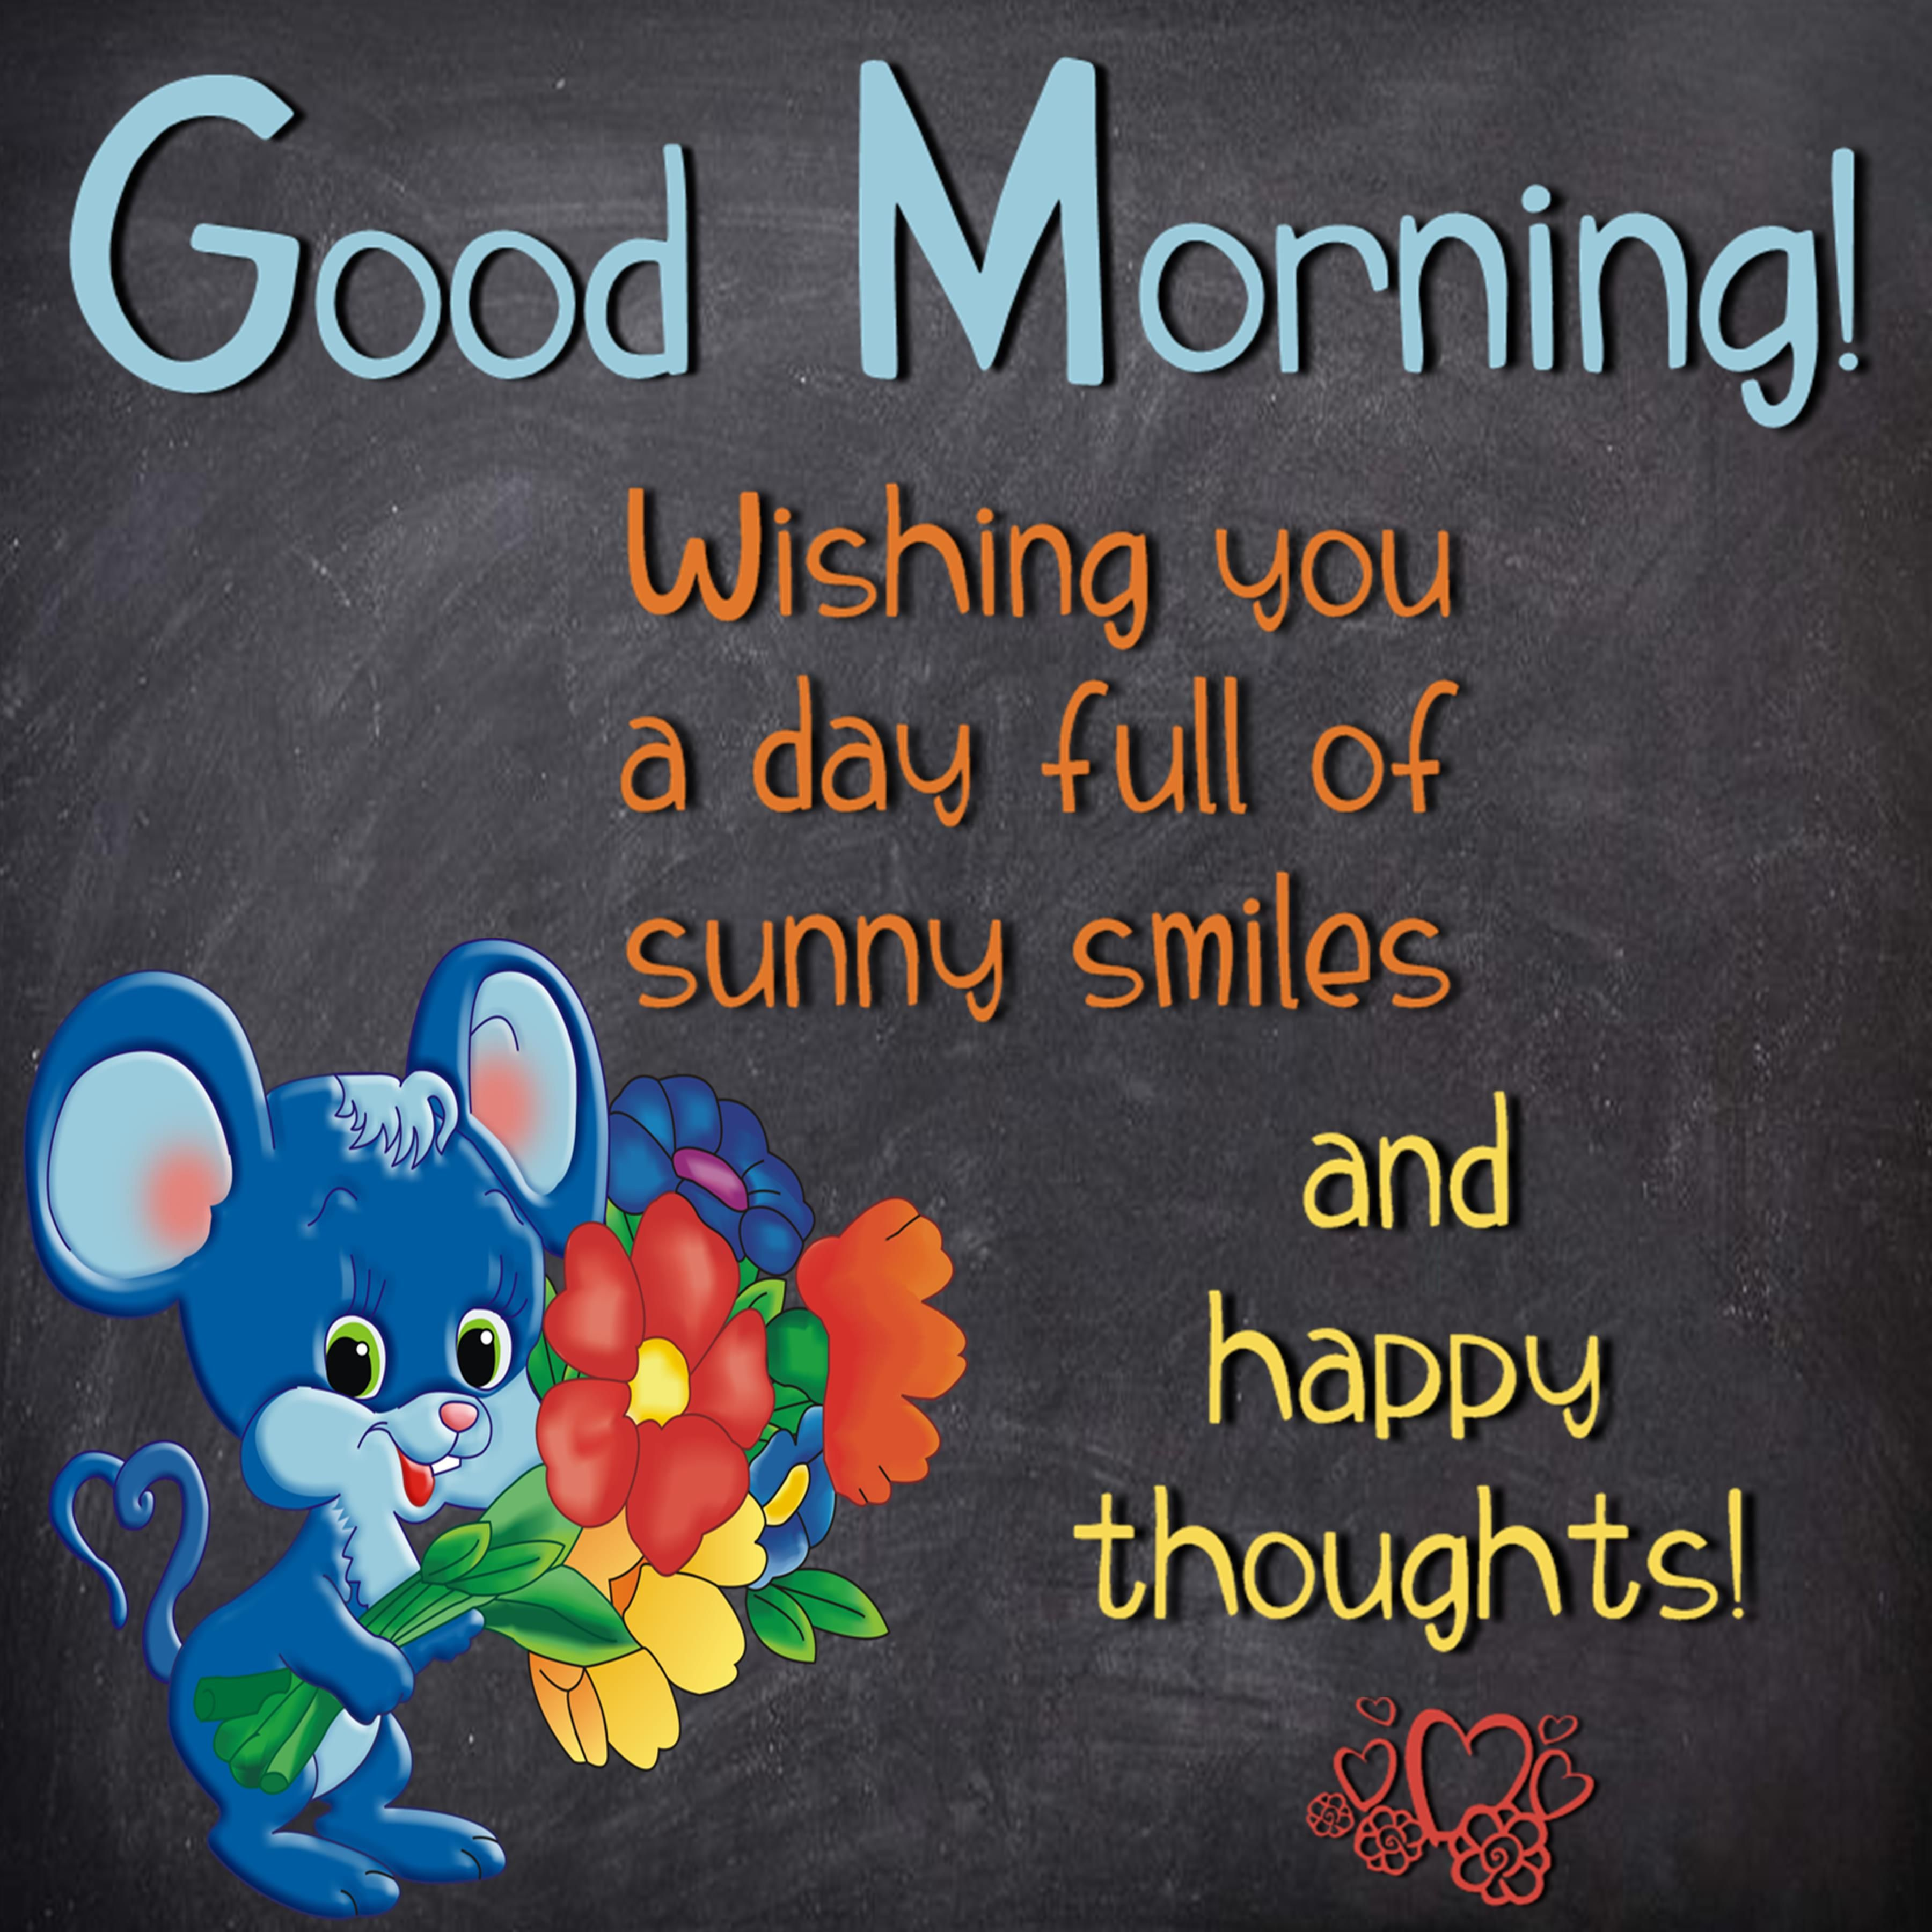 Good Morning Wishing You A Day Full Of Sunny Smiles And Happy Thoughts Good Morning Quotes Happy Weekend Quotes Good Morning Animated Images